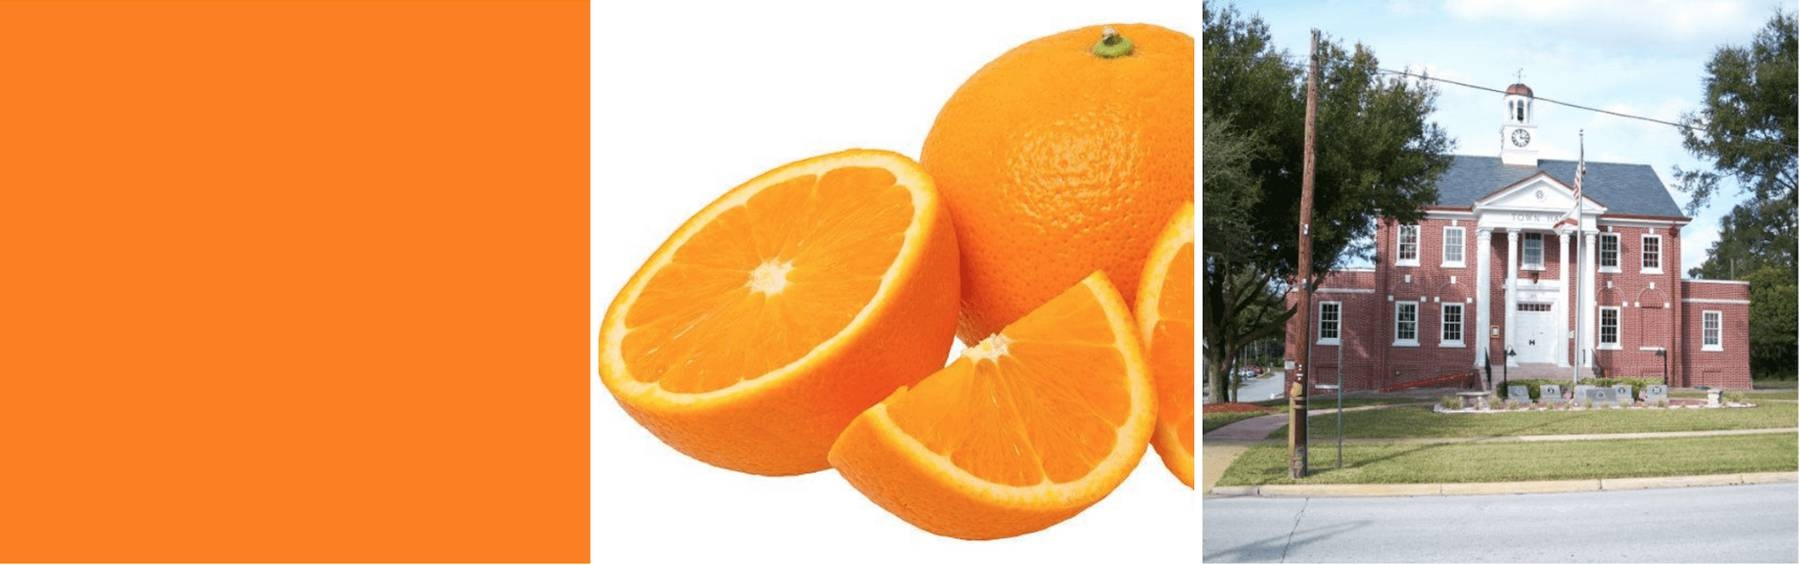 An image showing different meanings of the word 'orange'.